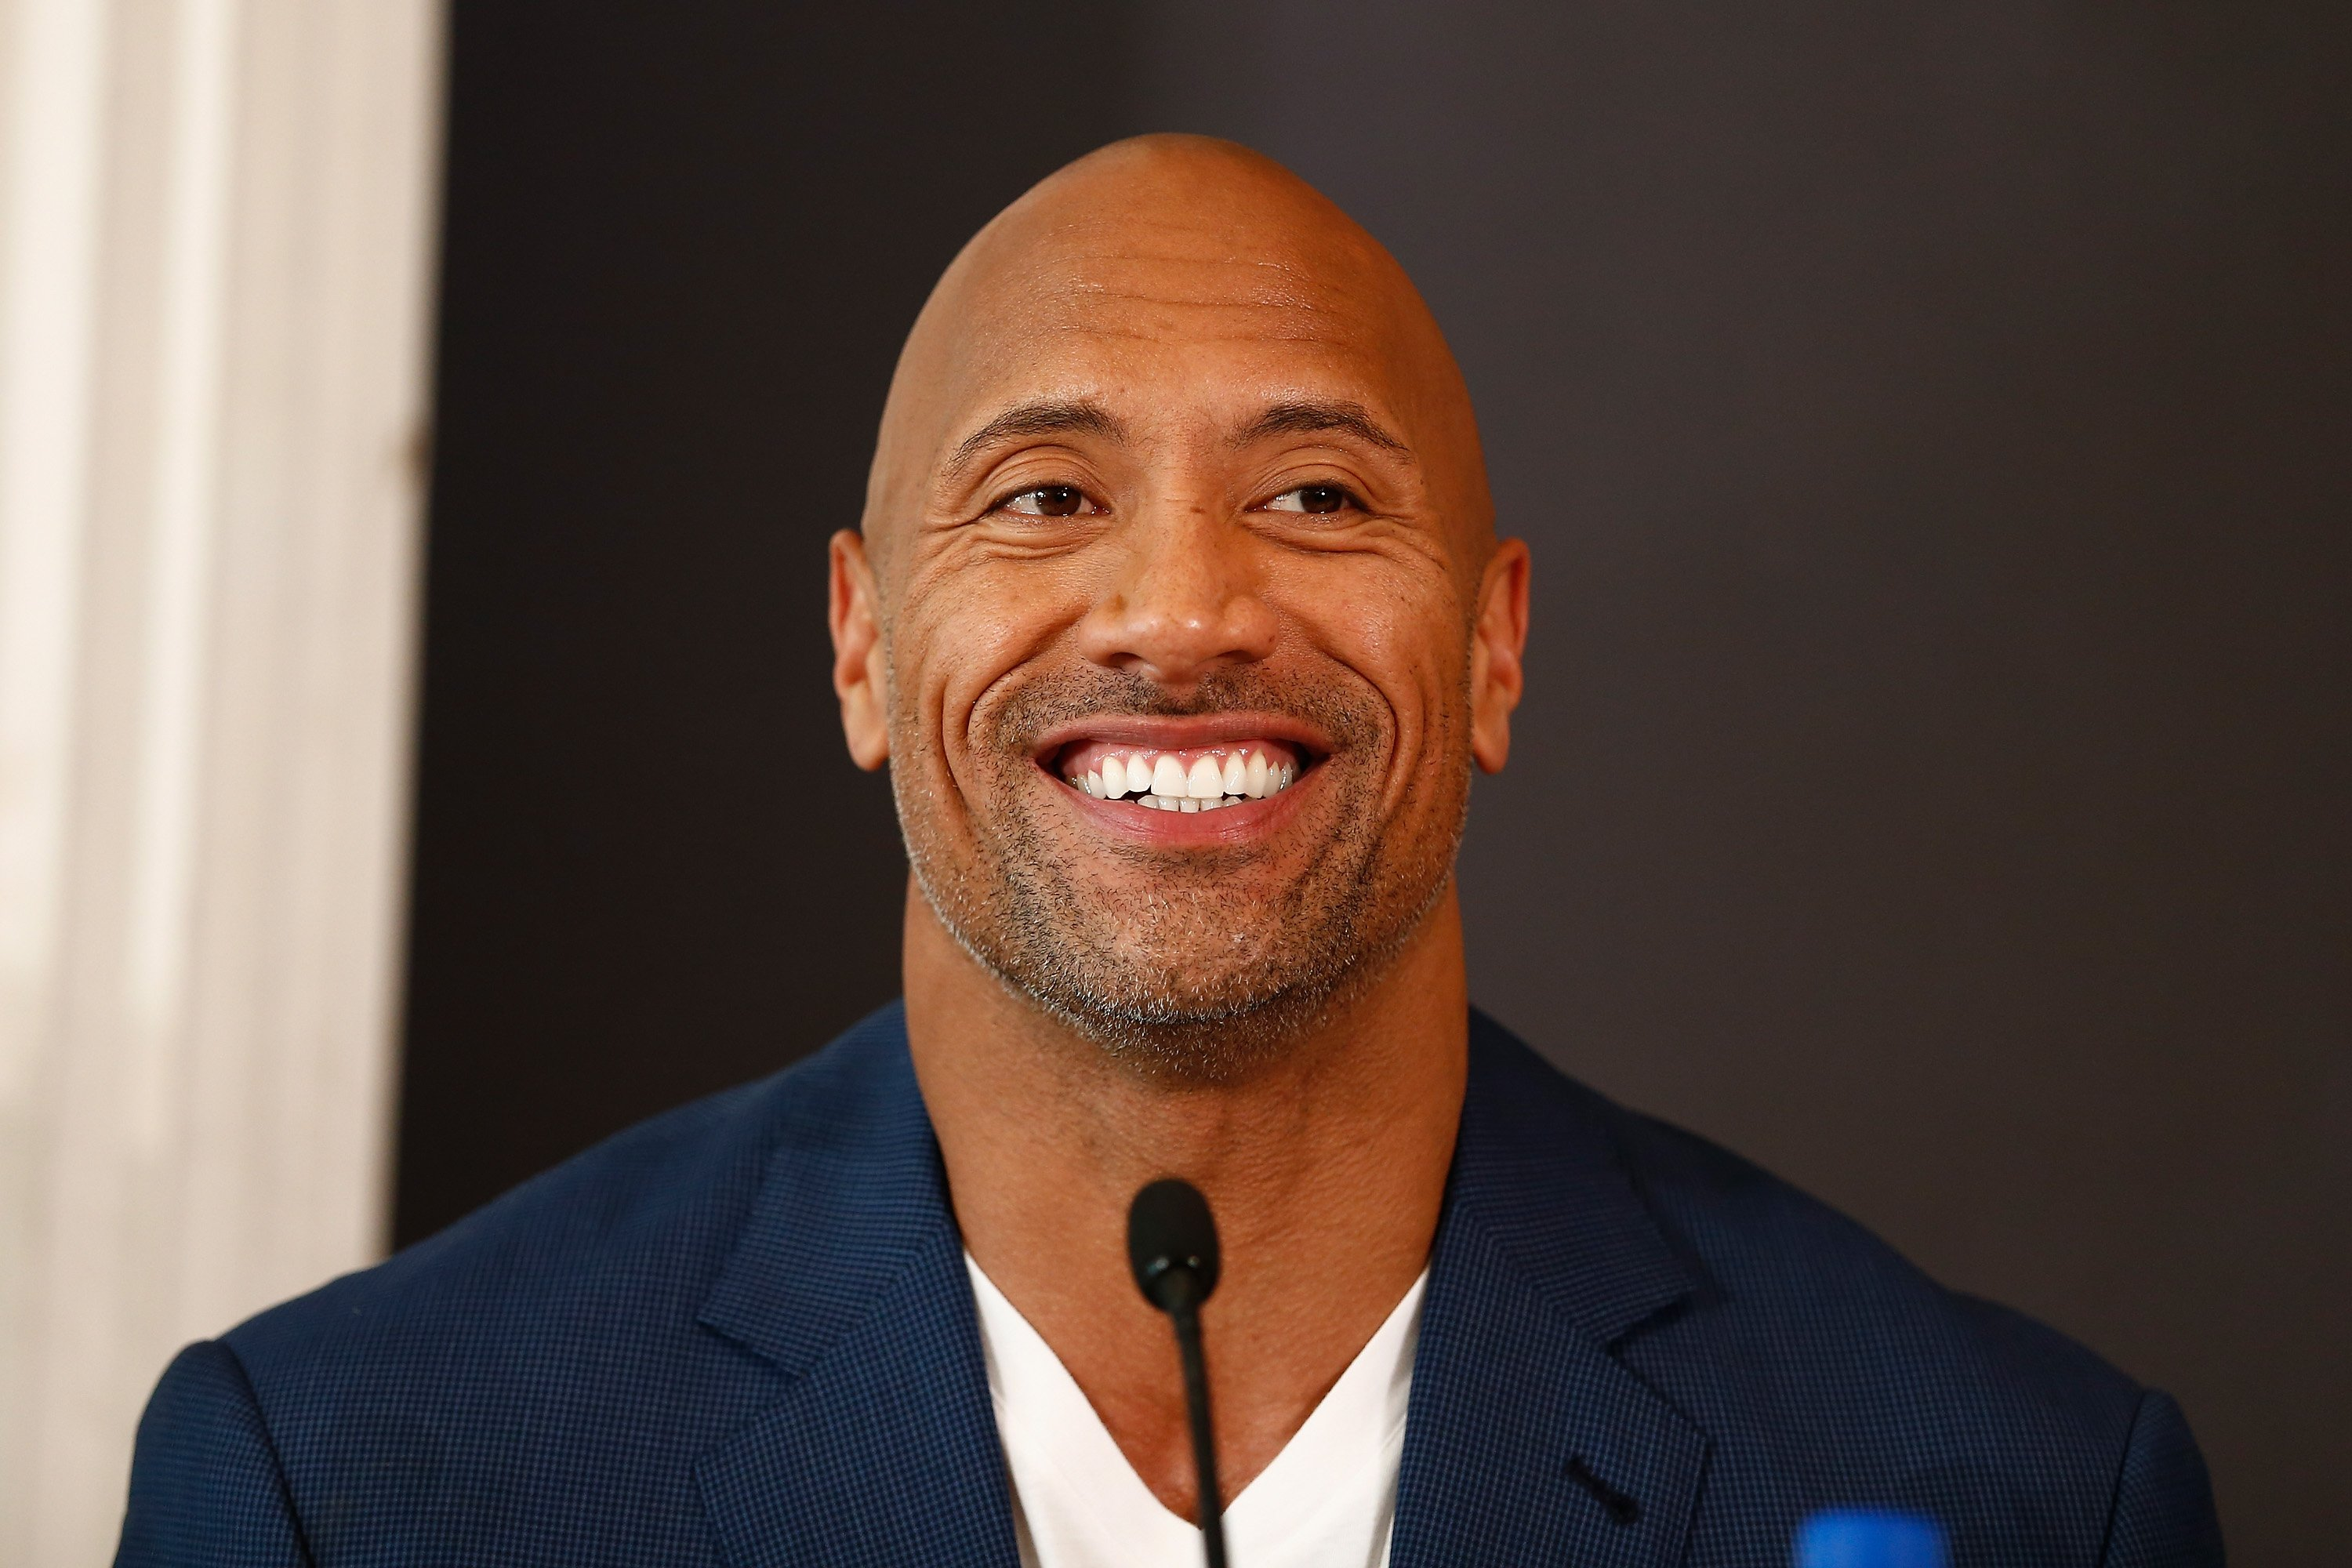 Dwayne Johnson attends the press conference of Paramount Pictures 'HERCULES' on Aug. 21, 2014 in Berlin, Germany | Photo: Getty Images